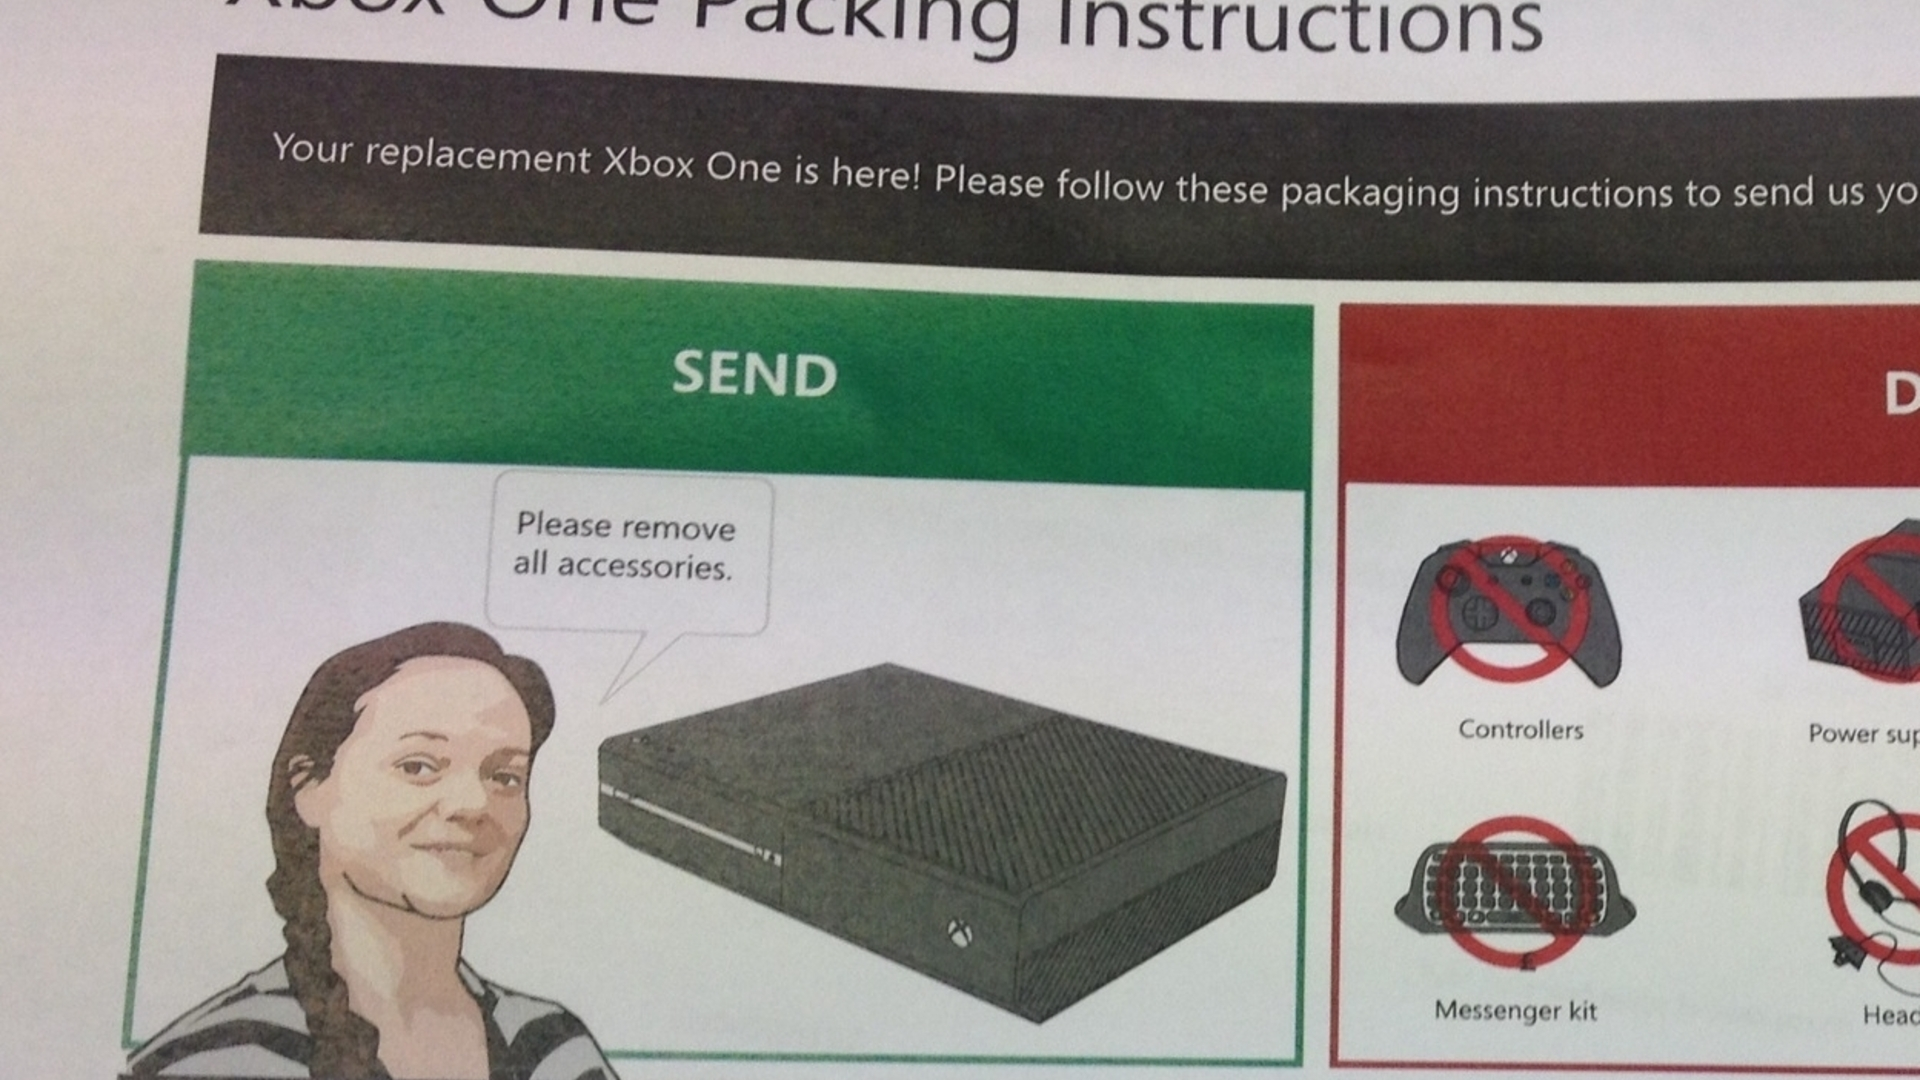 A DOA Xbox One, Microsoft support and a paperclip